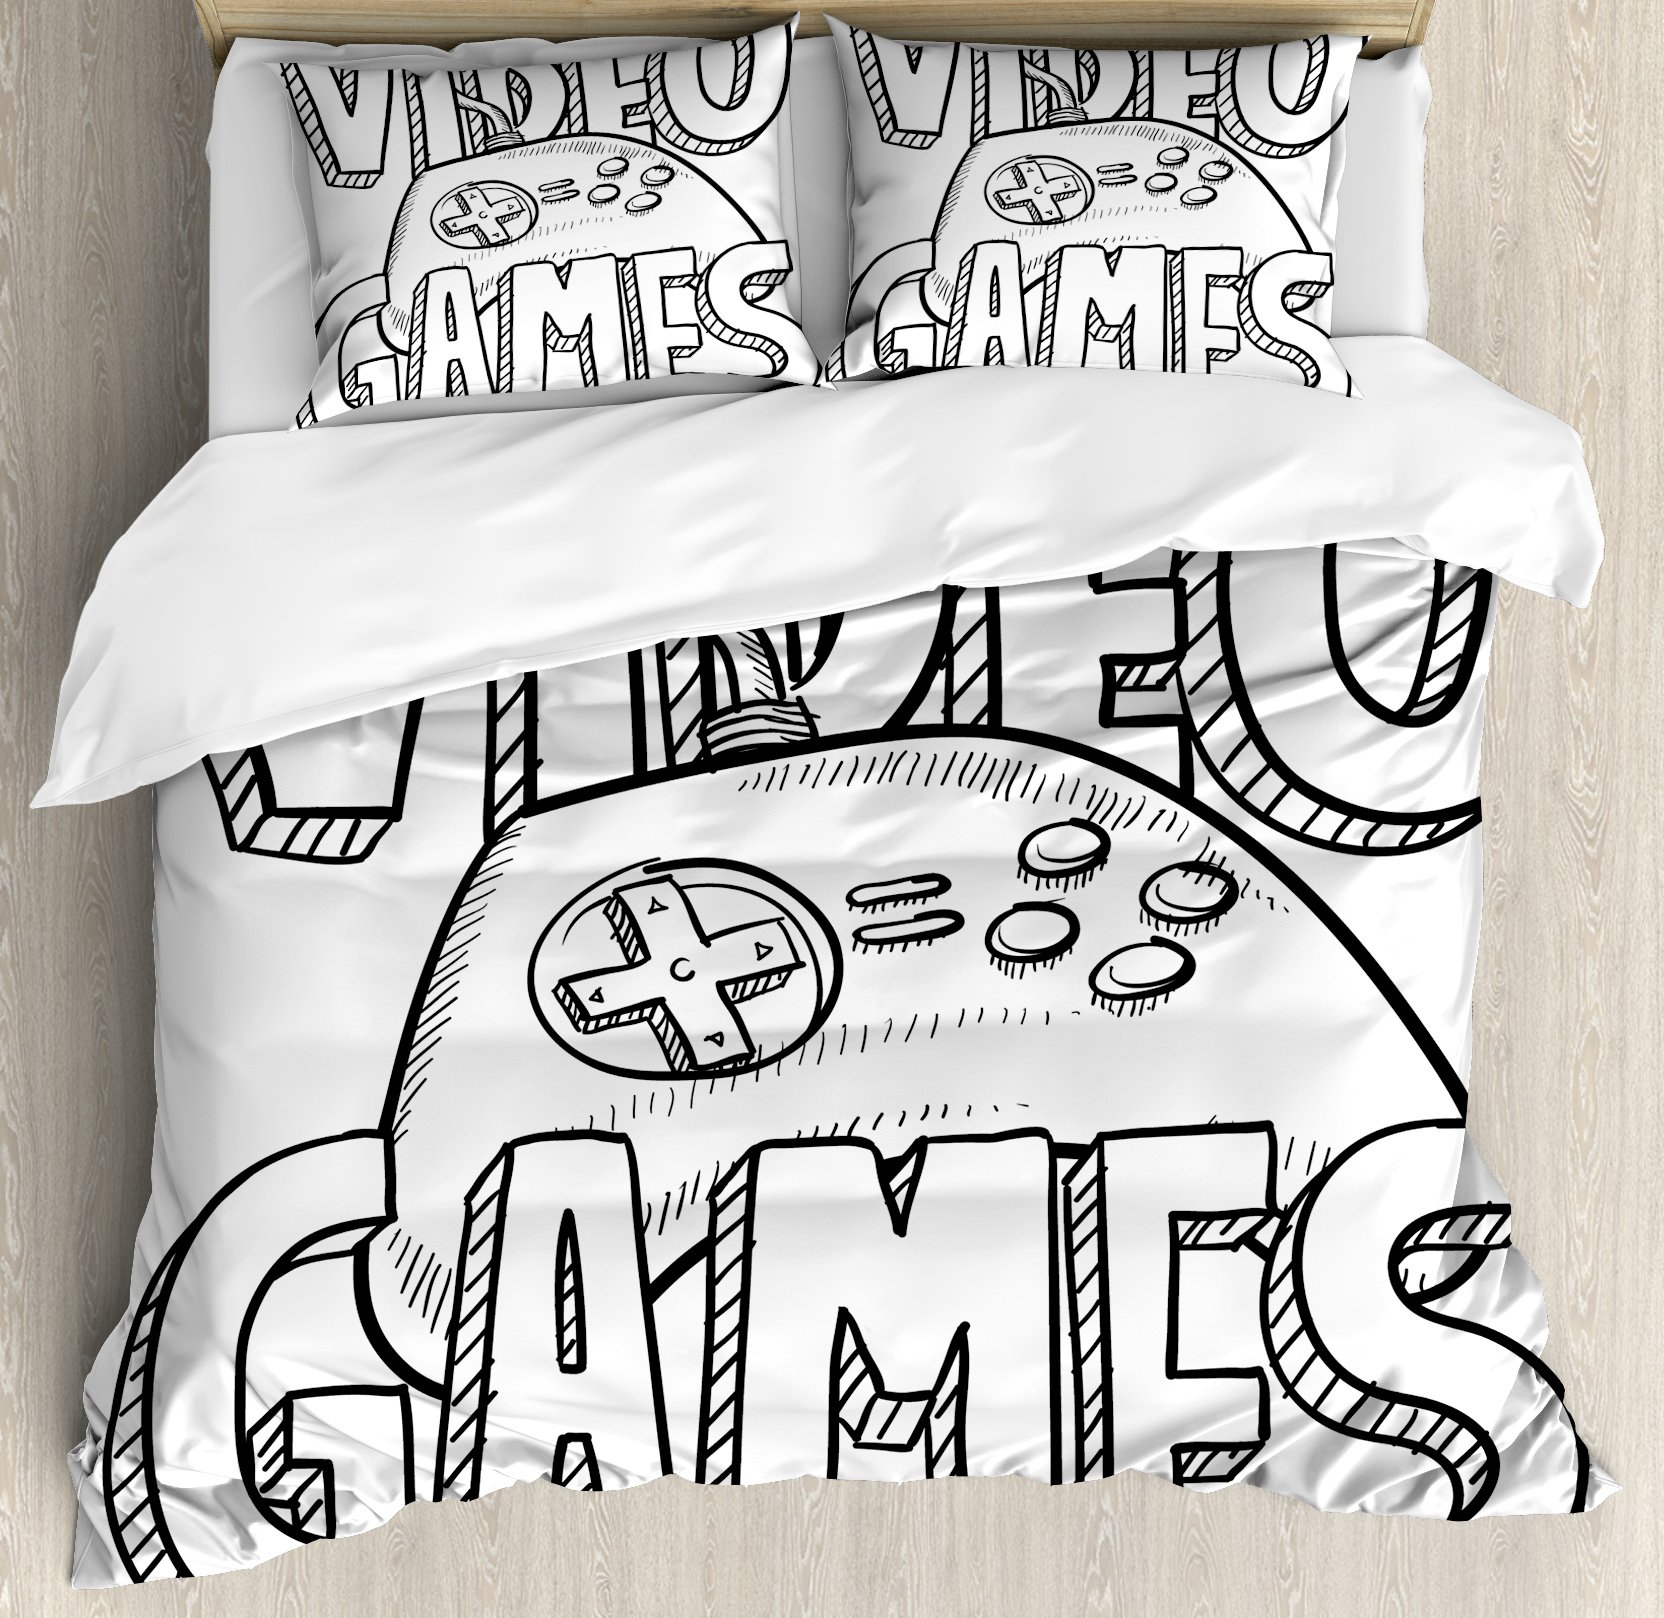 Boy's Room Duvet Cover Set Queen Size by Lunarable, Doodle Style Video Games Typography Design with a Controller Sketch Artwork, Decorative 3 Piece Bedding Set with 2 Pillow Shams, Black White